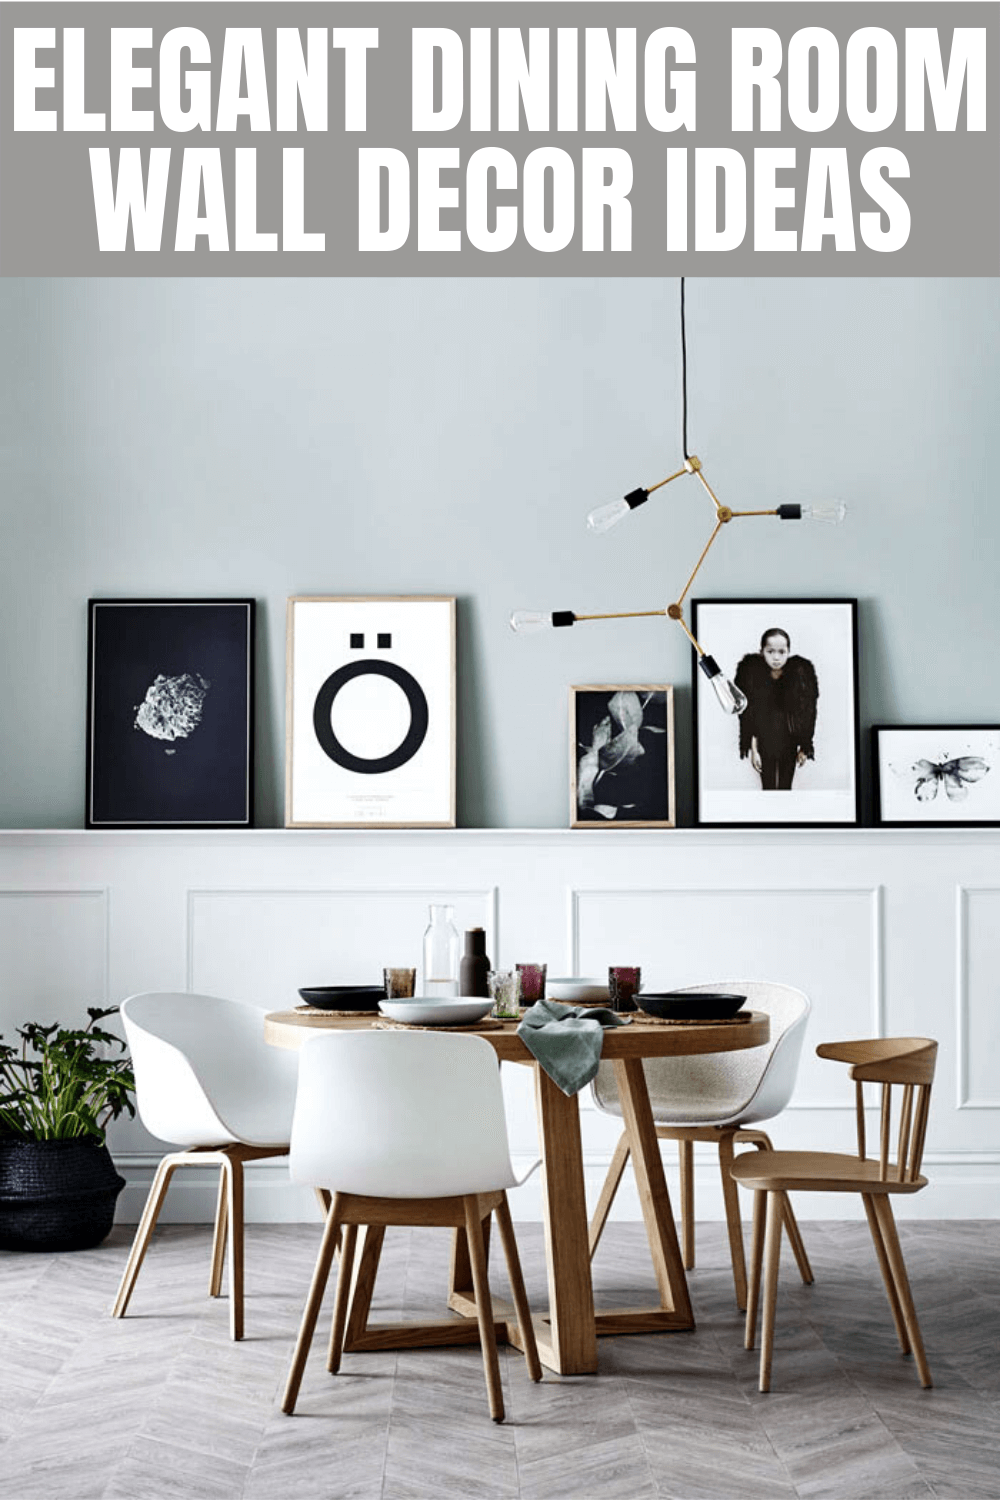 ELEGANT DINING ROOM WALL DECOR IDEAS